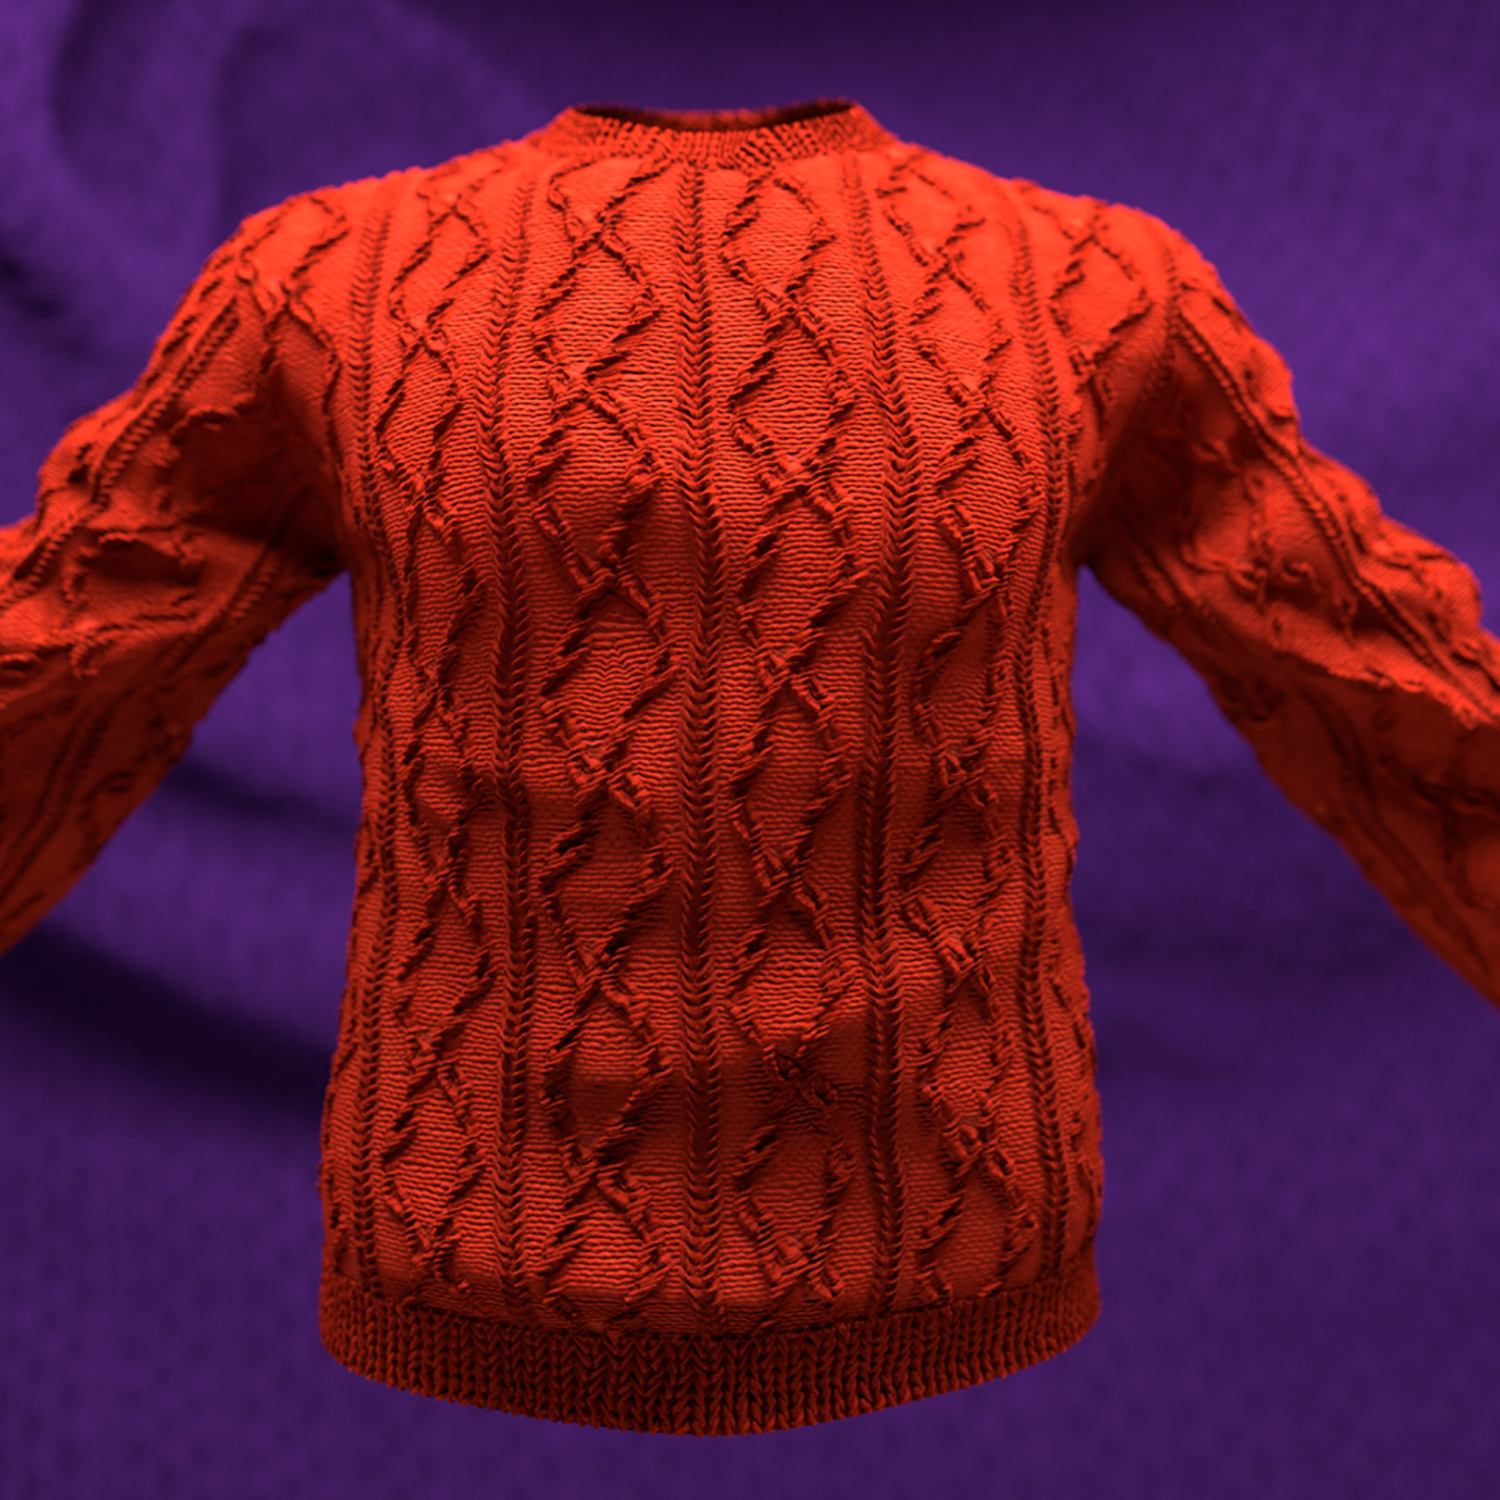 Knitted Christmas Jumper Render